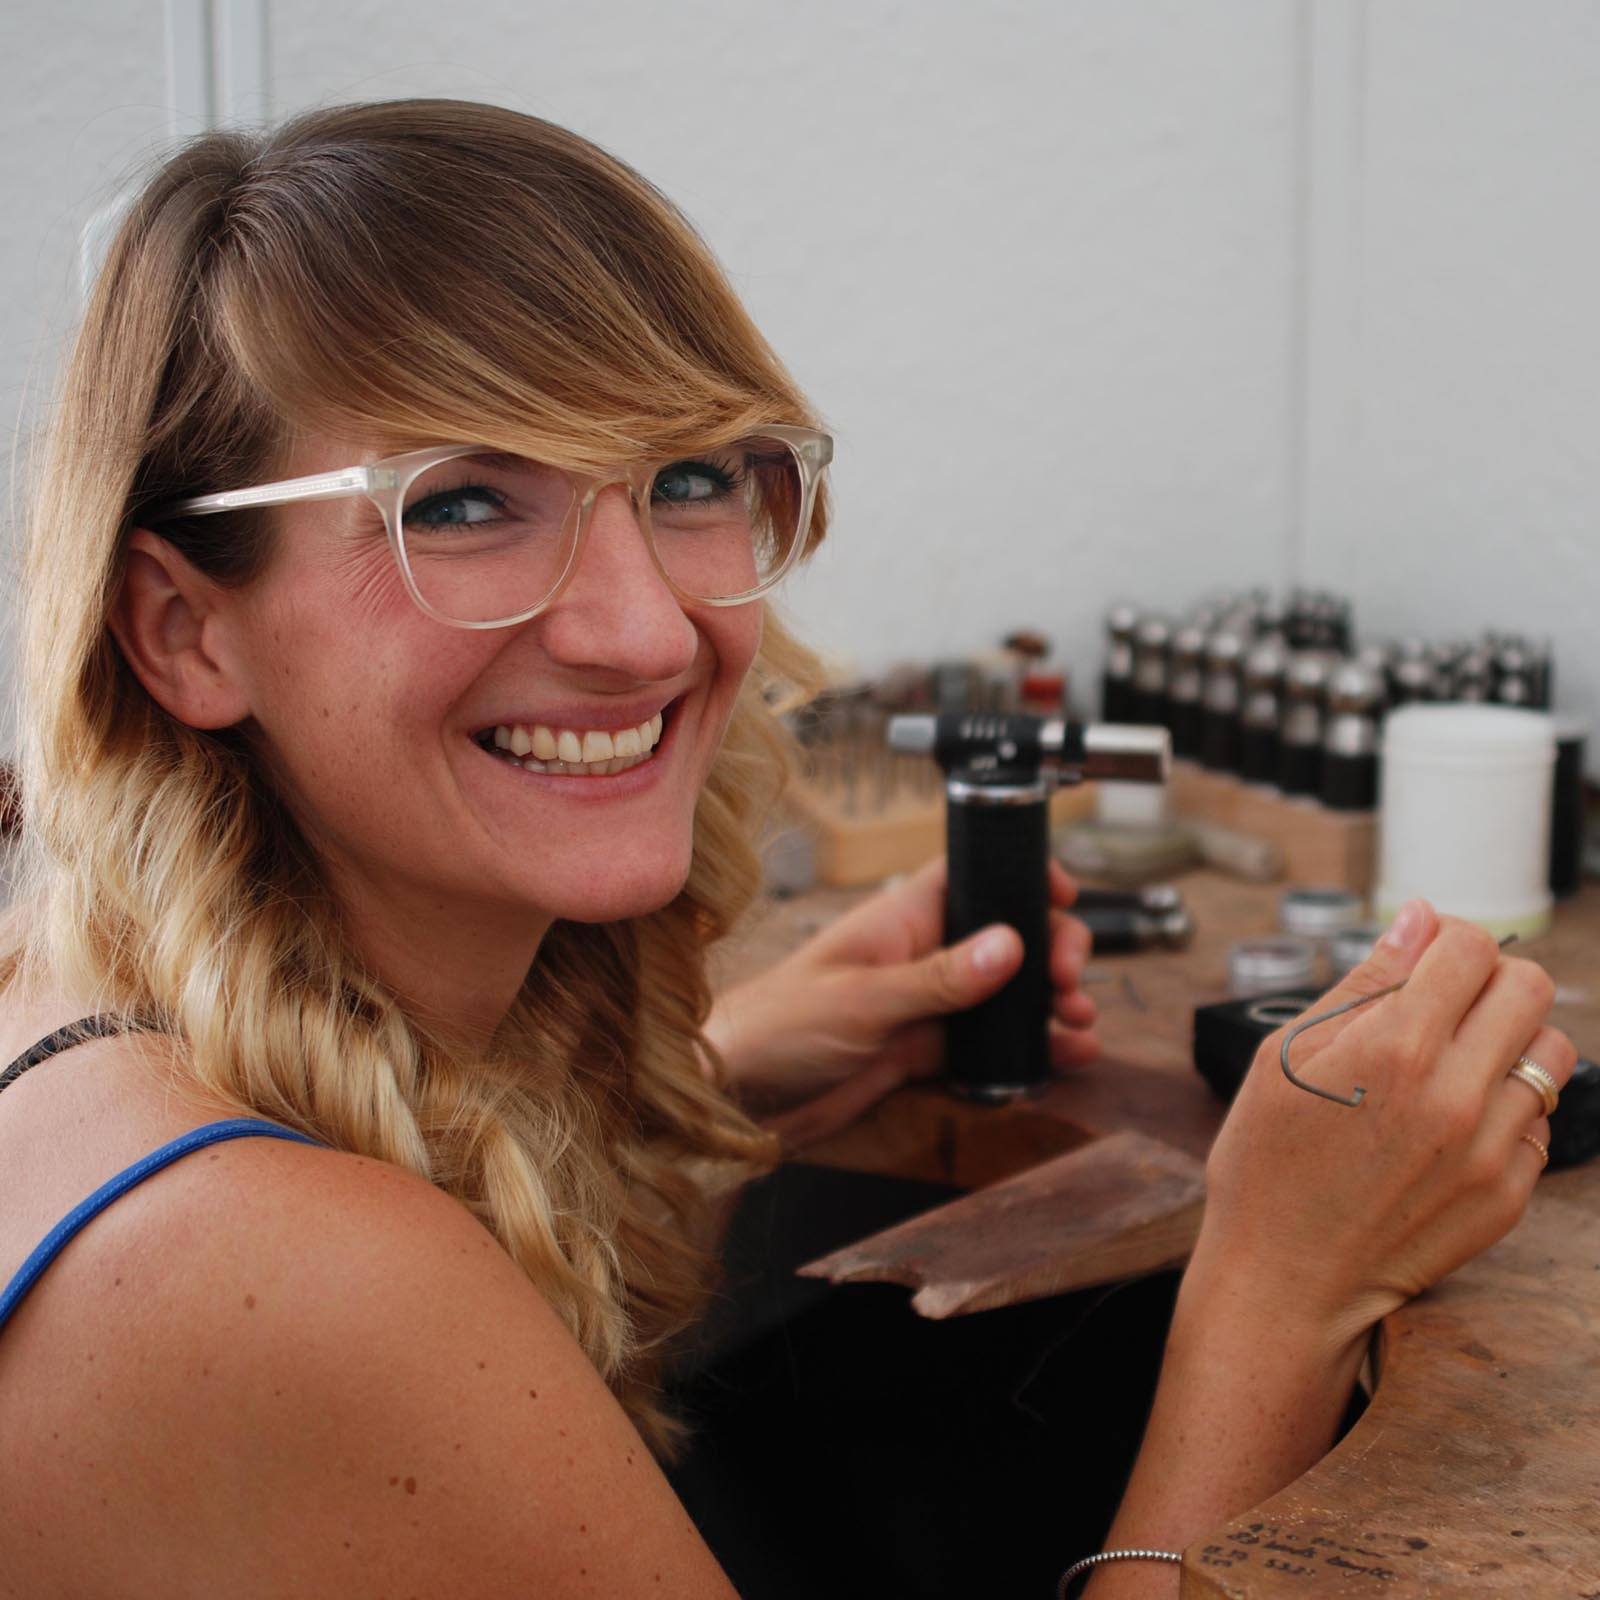 Judith Peterhoff working at the bench, handcrafted jewellery made in North London